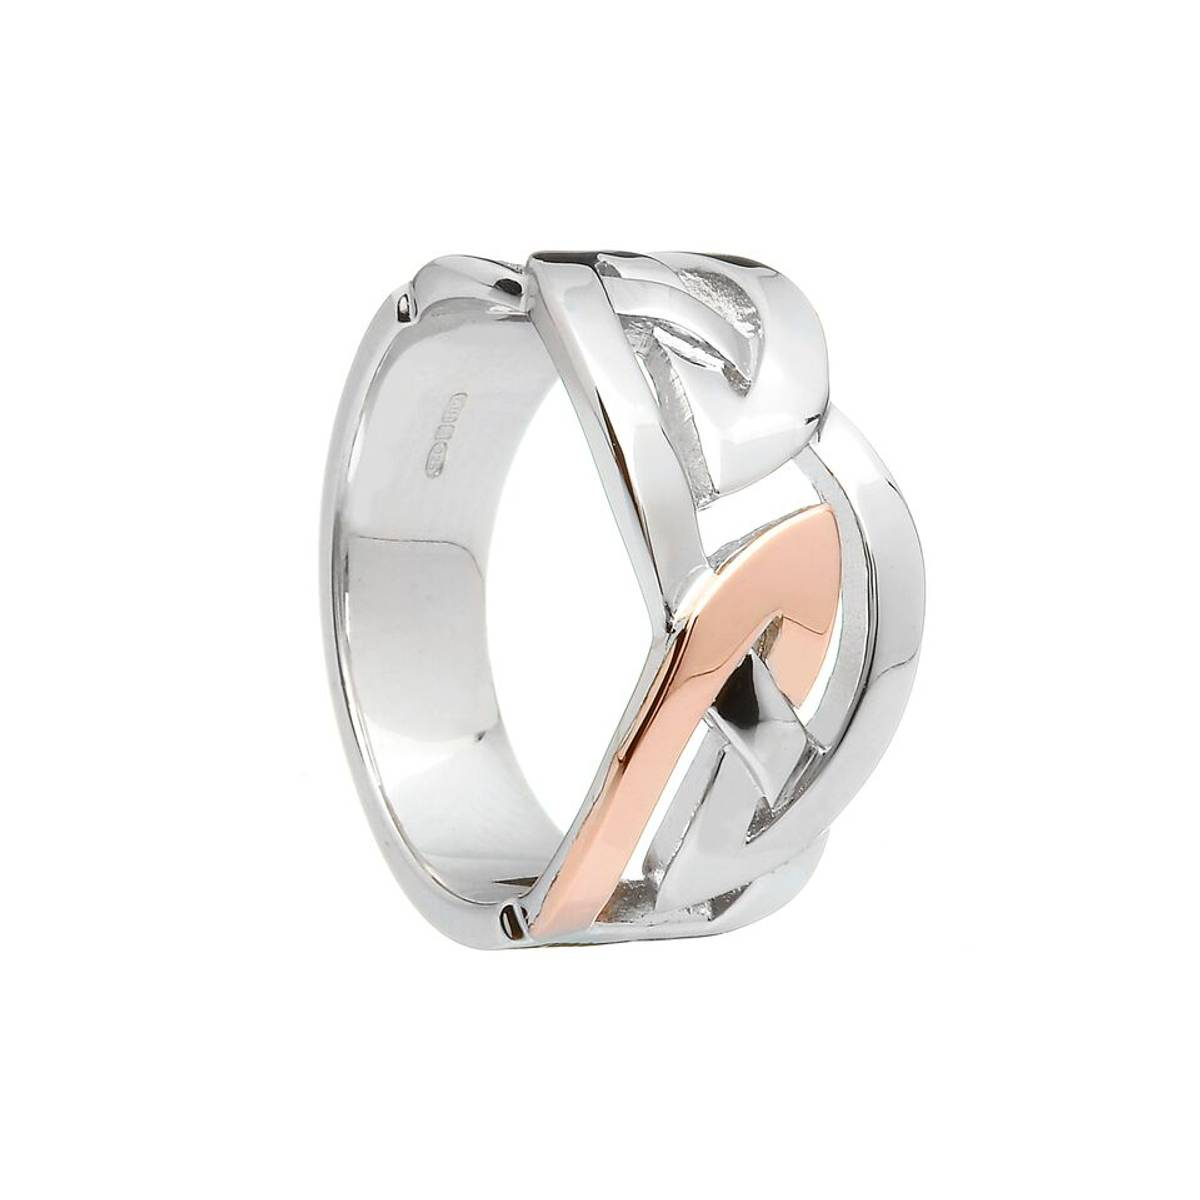 sterling silver and rare Irish rose gold man's Celtic design band ring.sizes 9 to 12 only